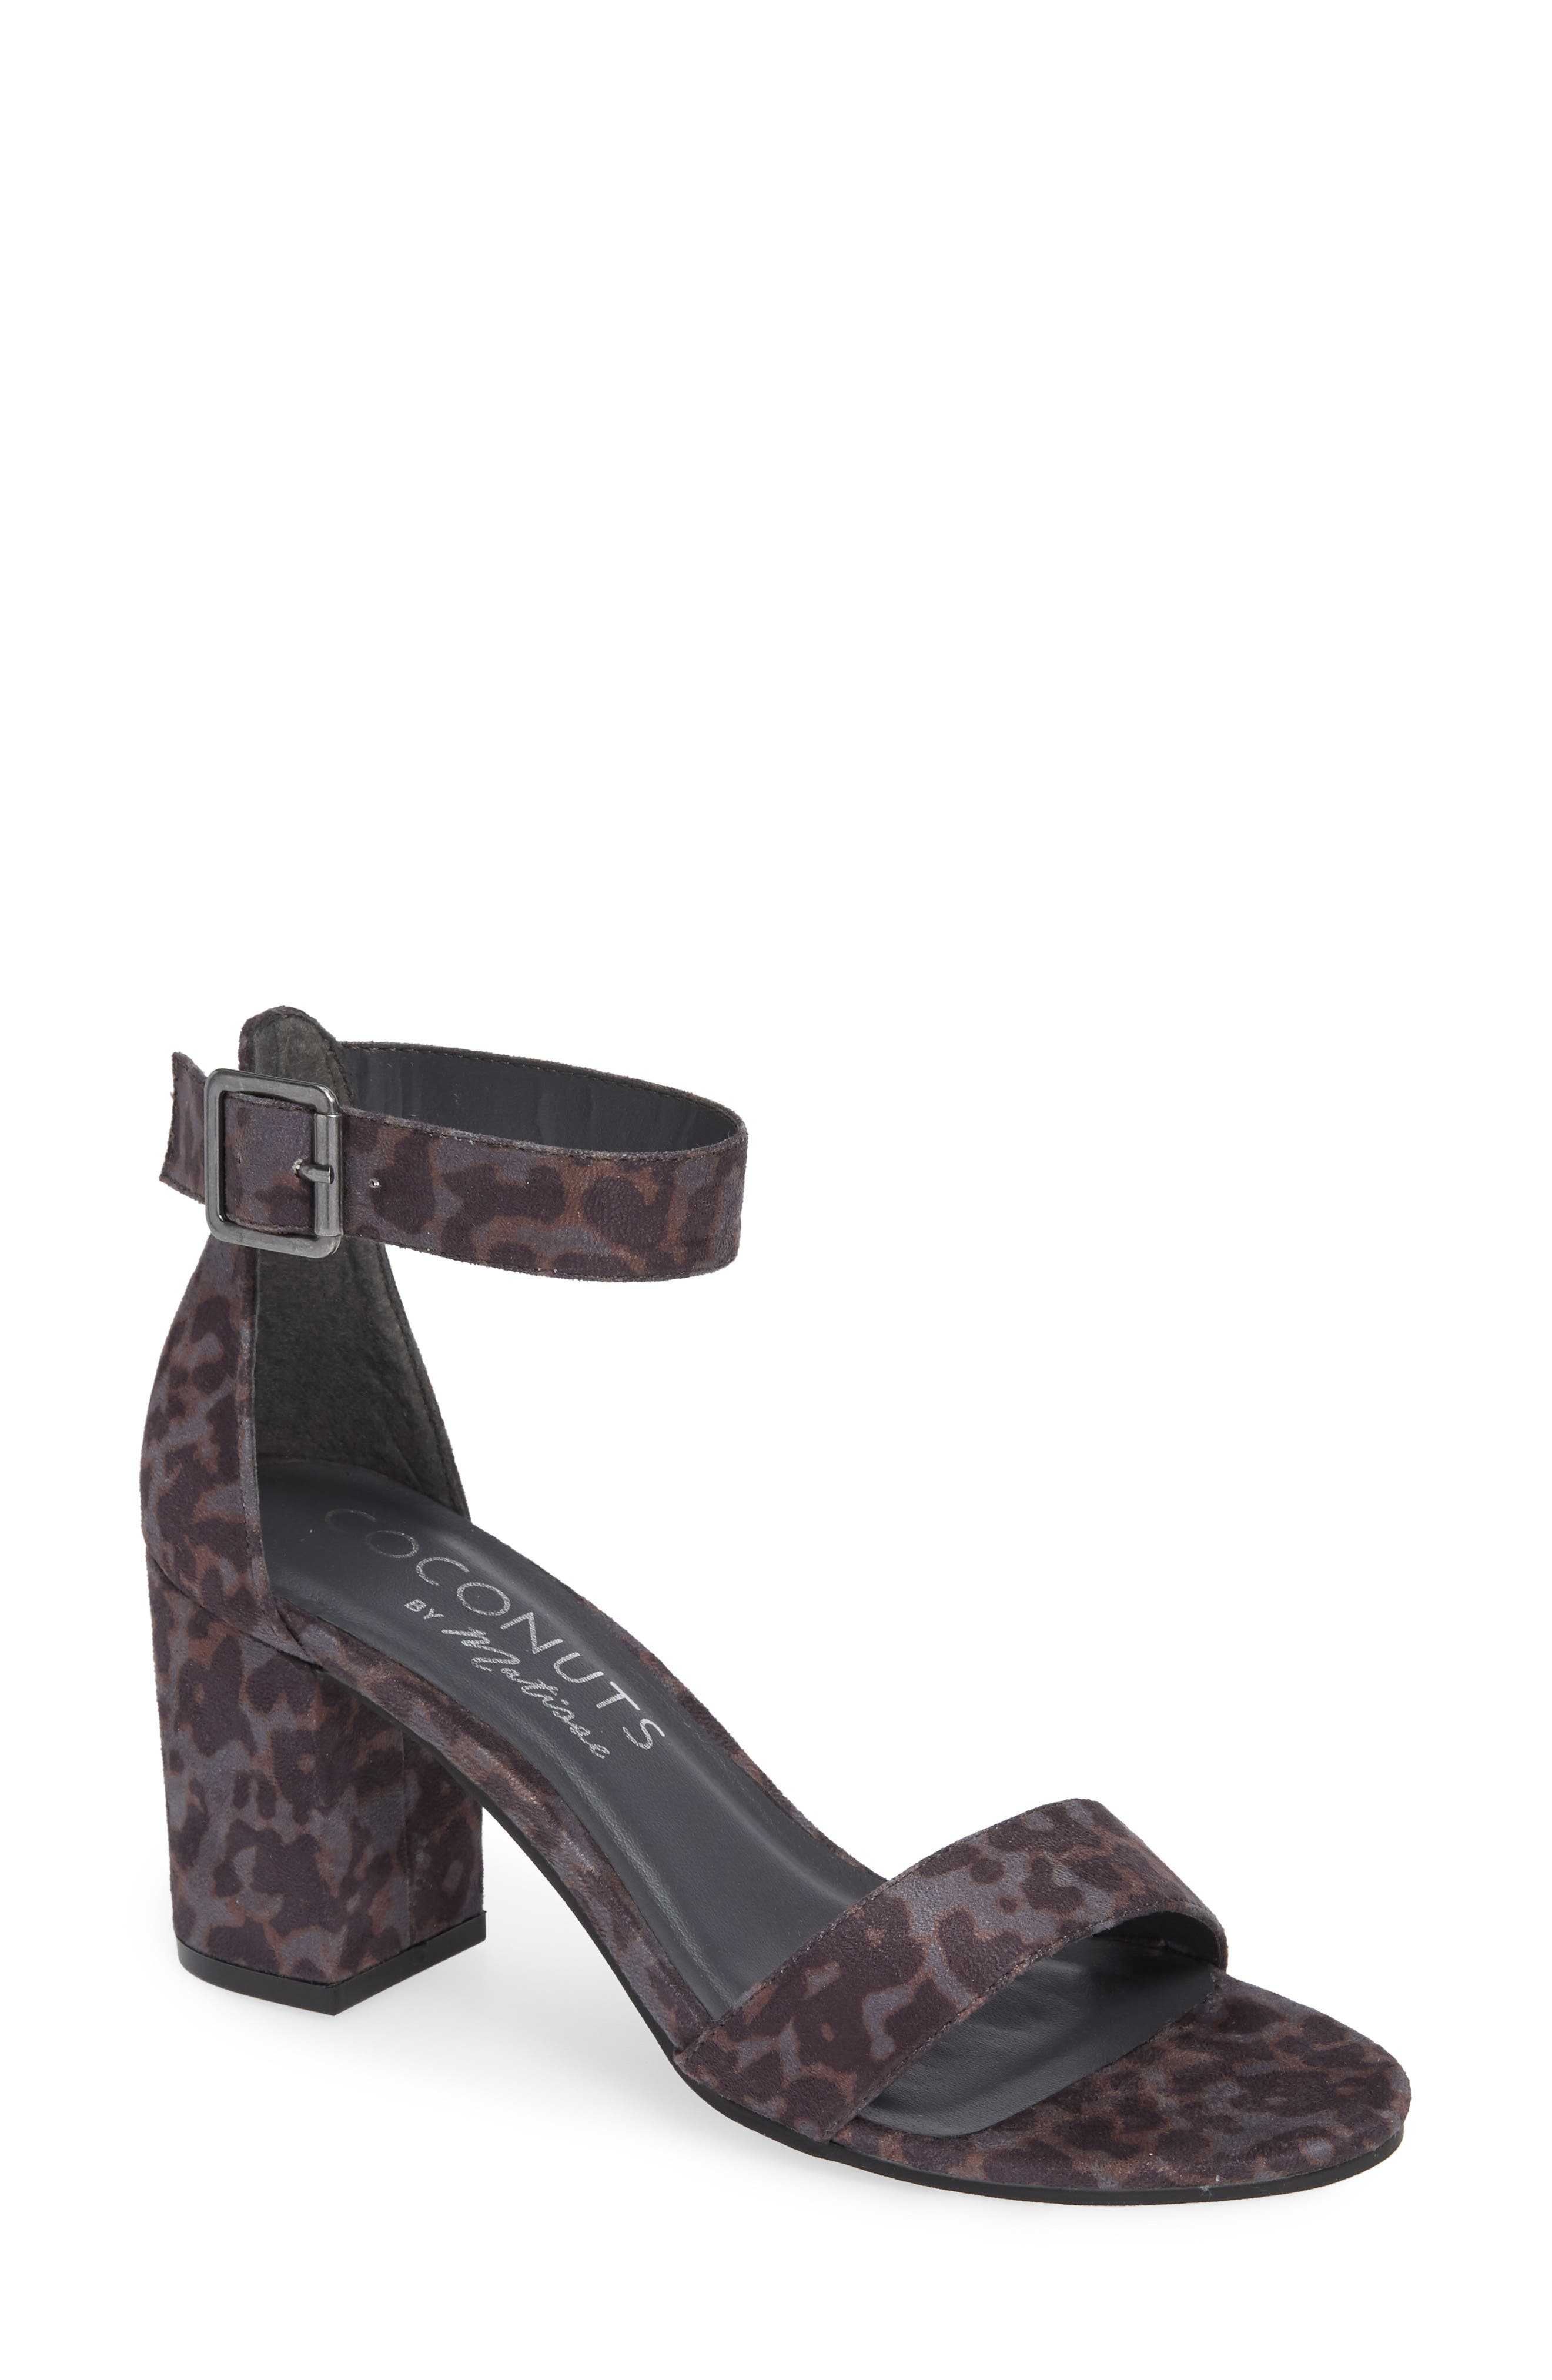 COCONUTS BY MATISSE Sashed Sandal, Main, color, 028